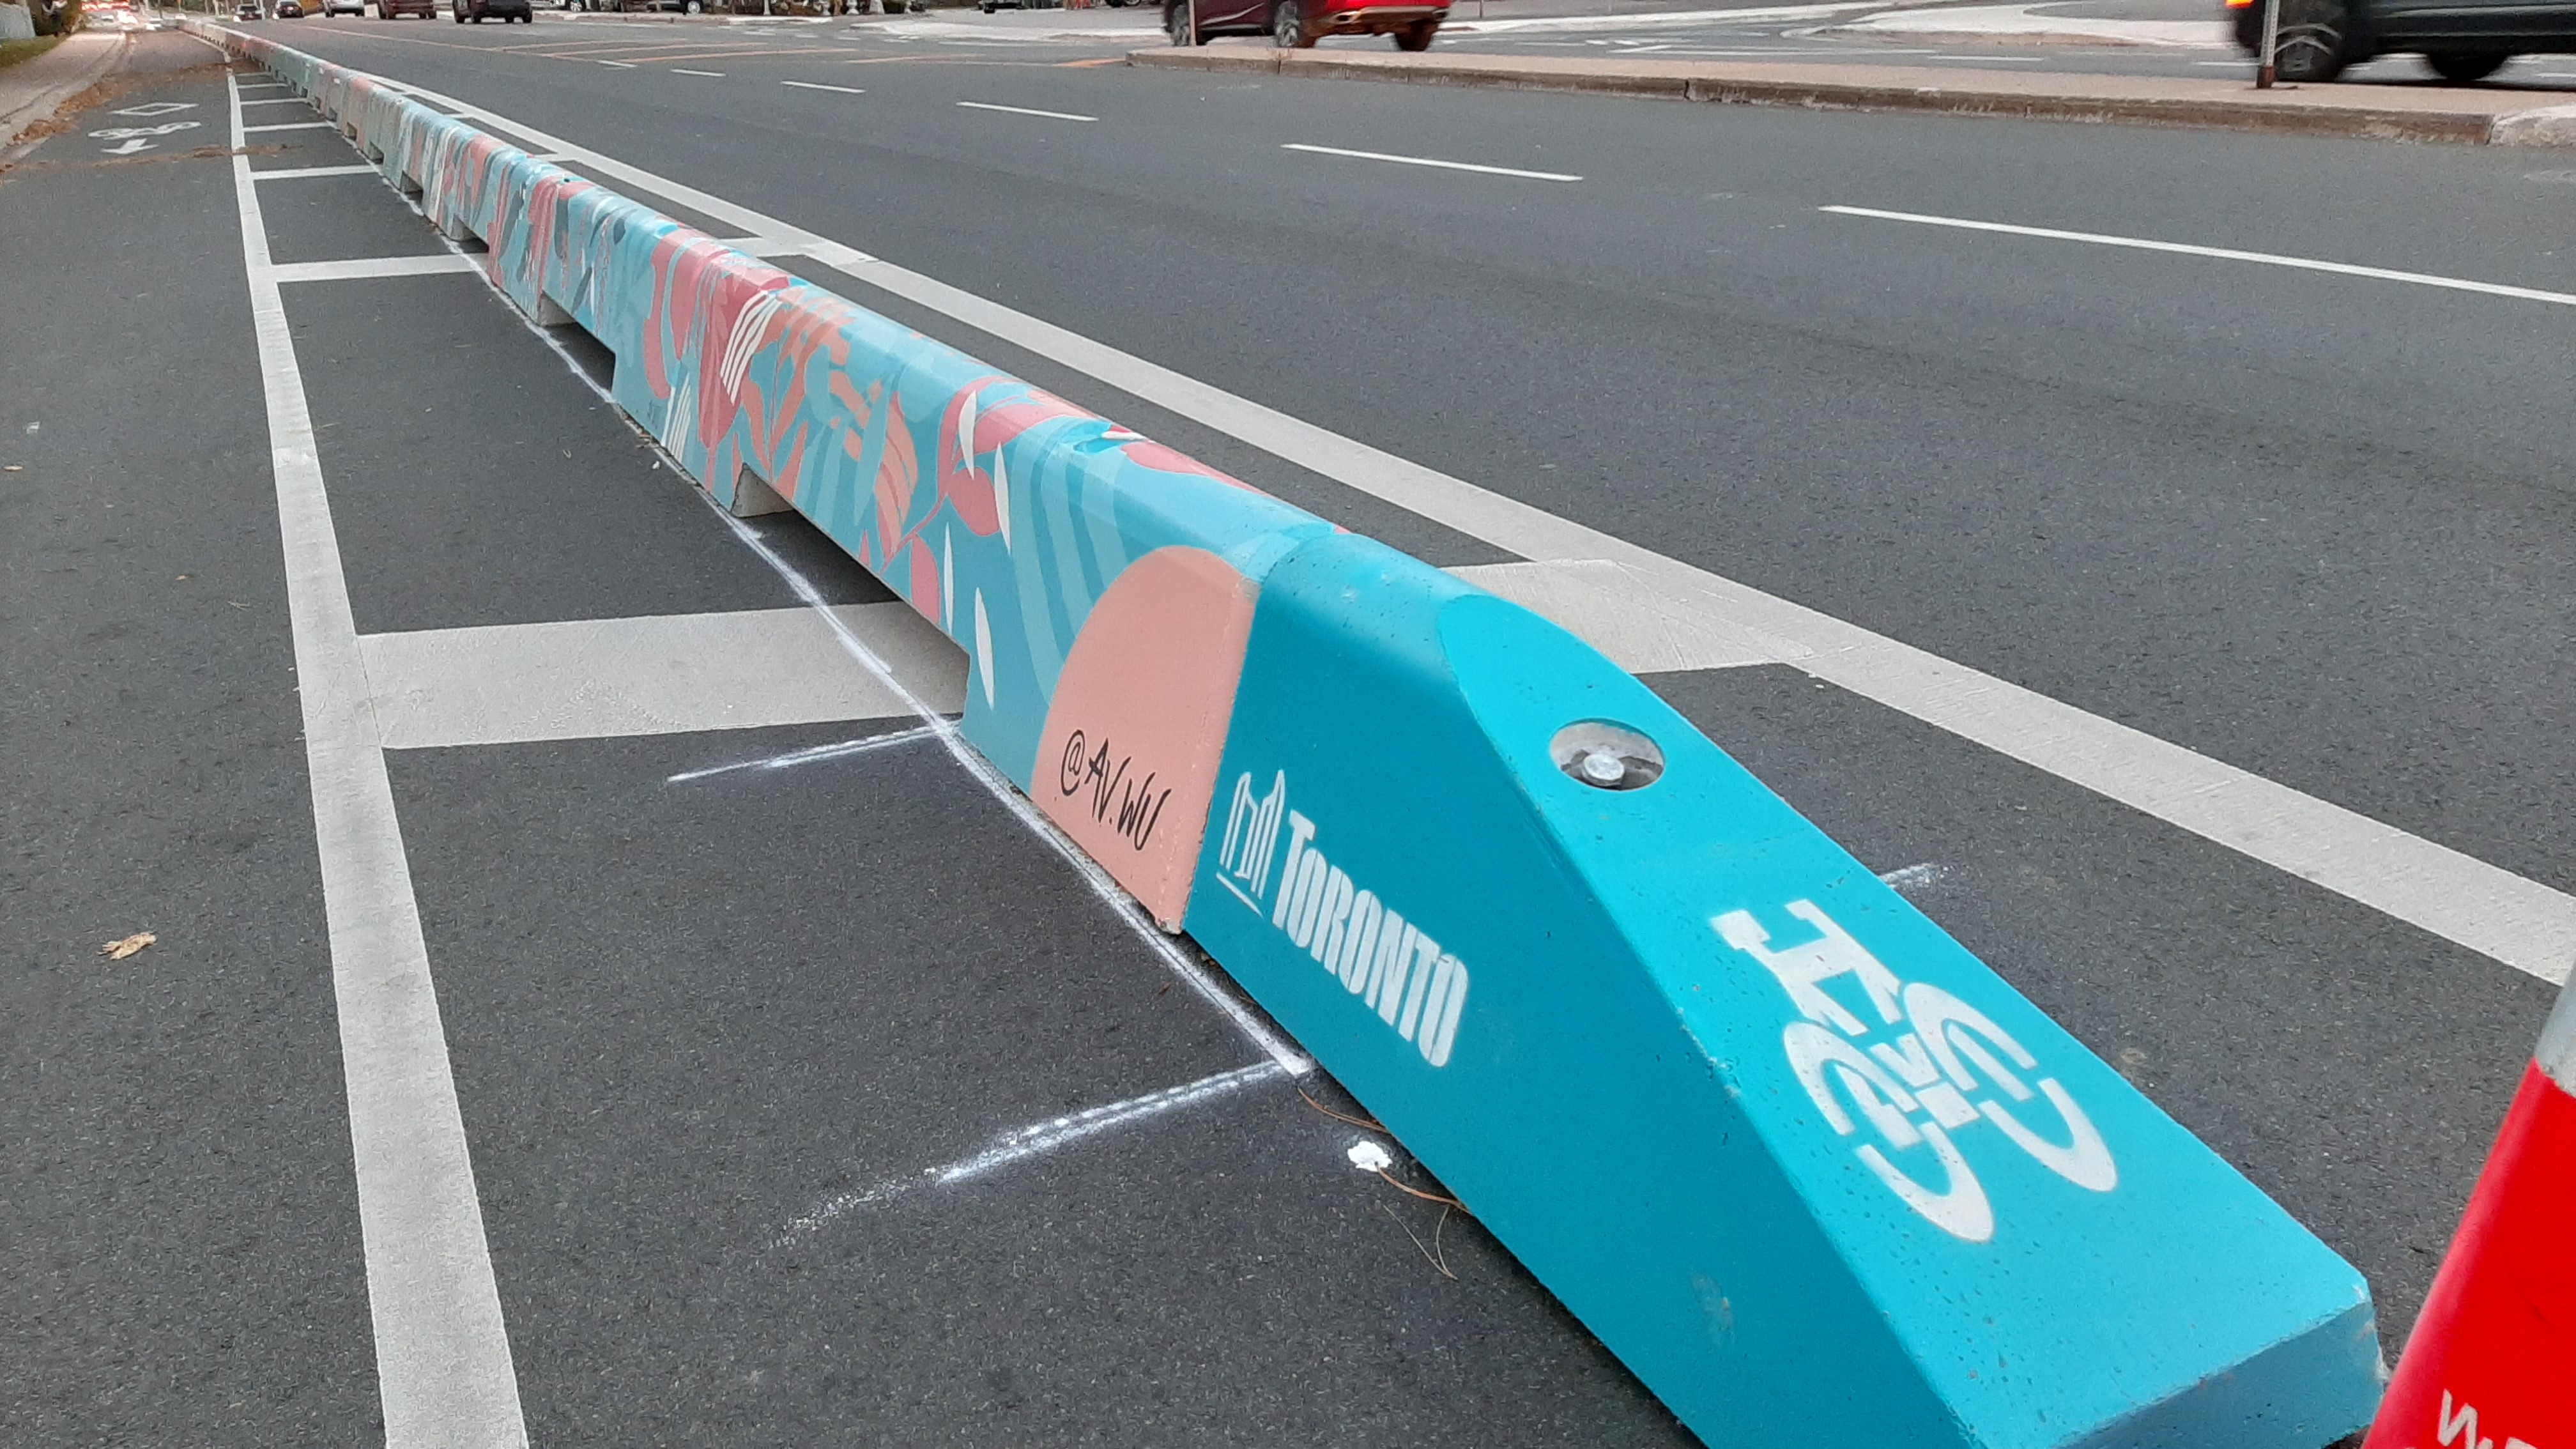 Colourfully painted barriers separate a bike lane from traffic.